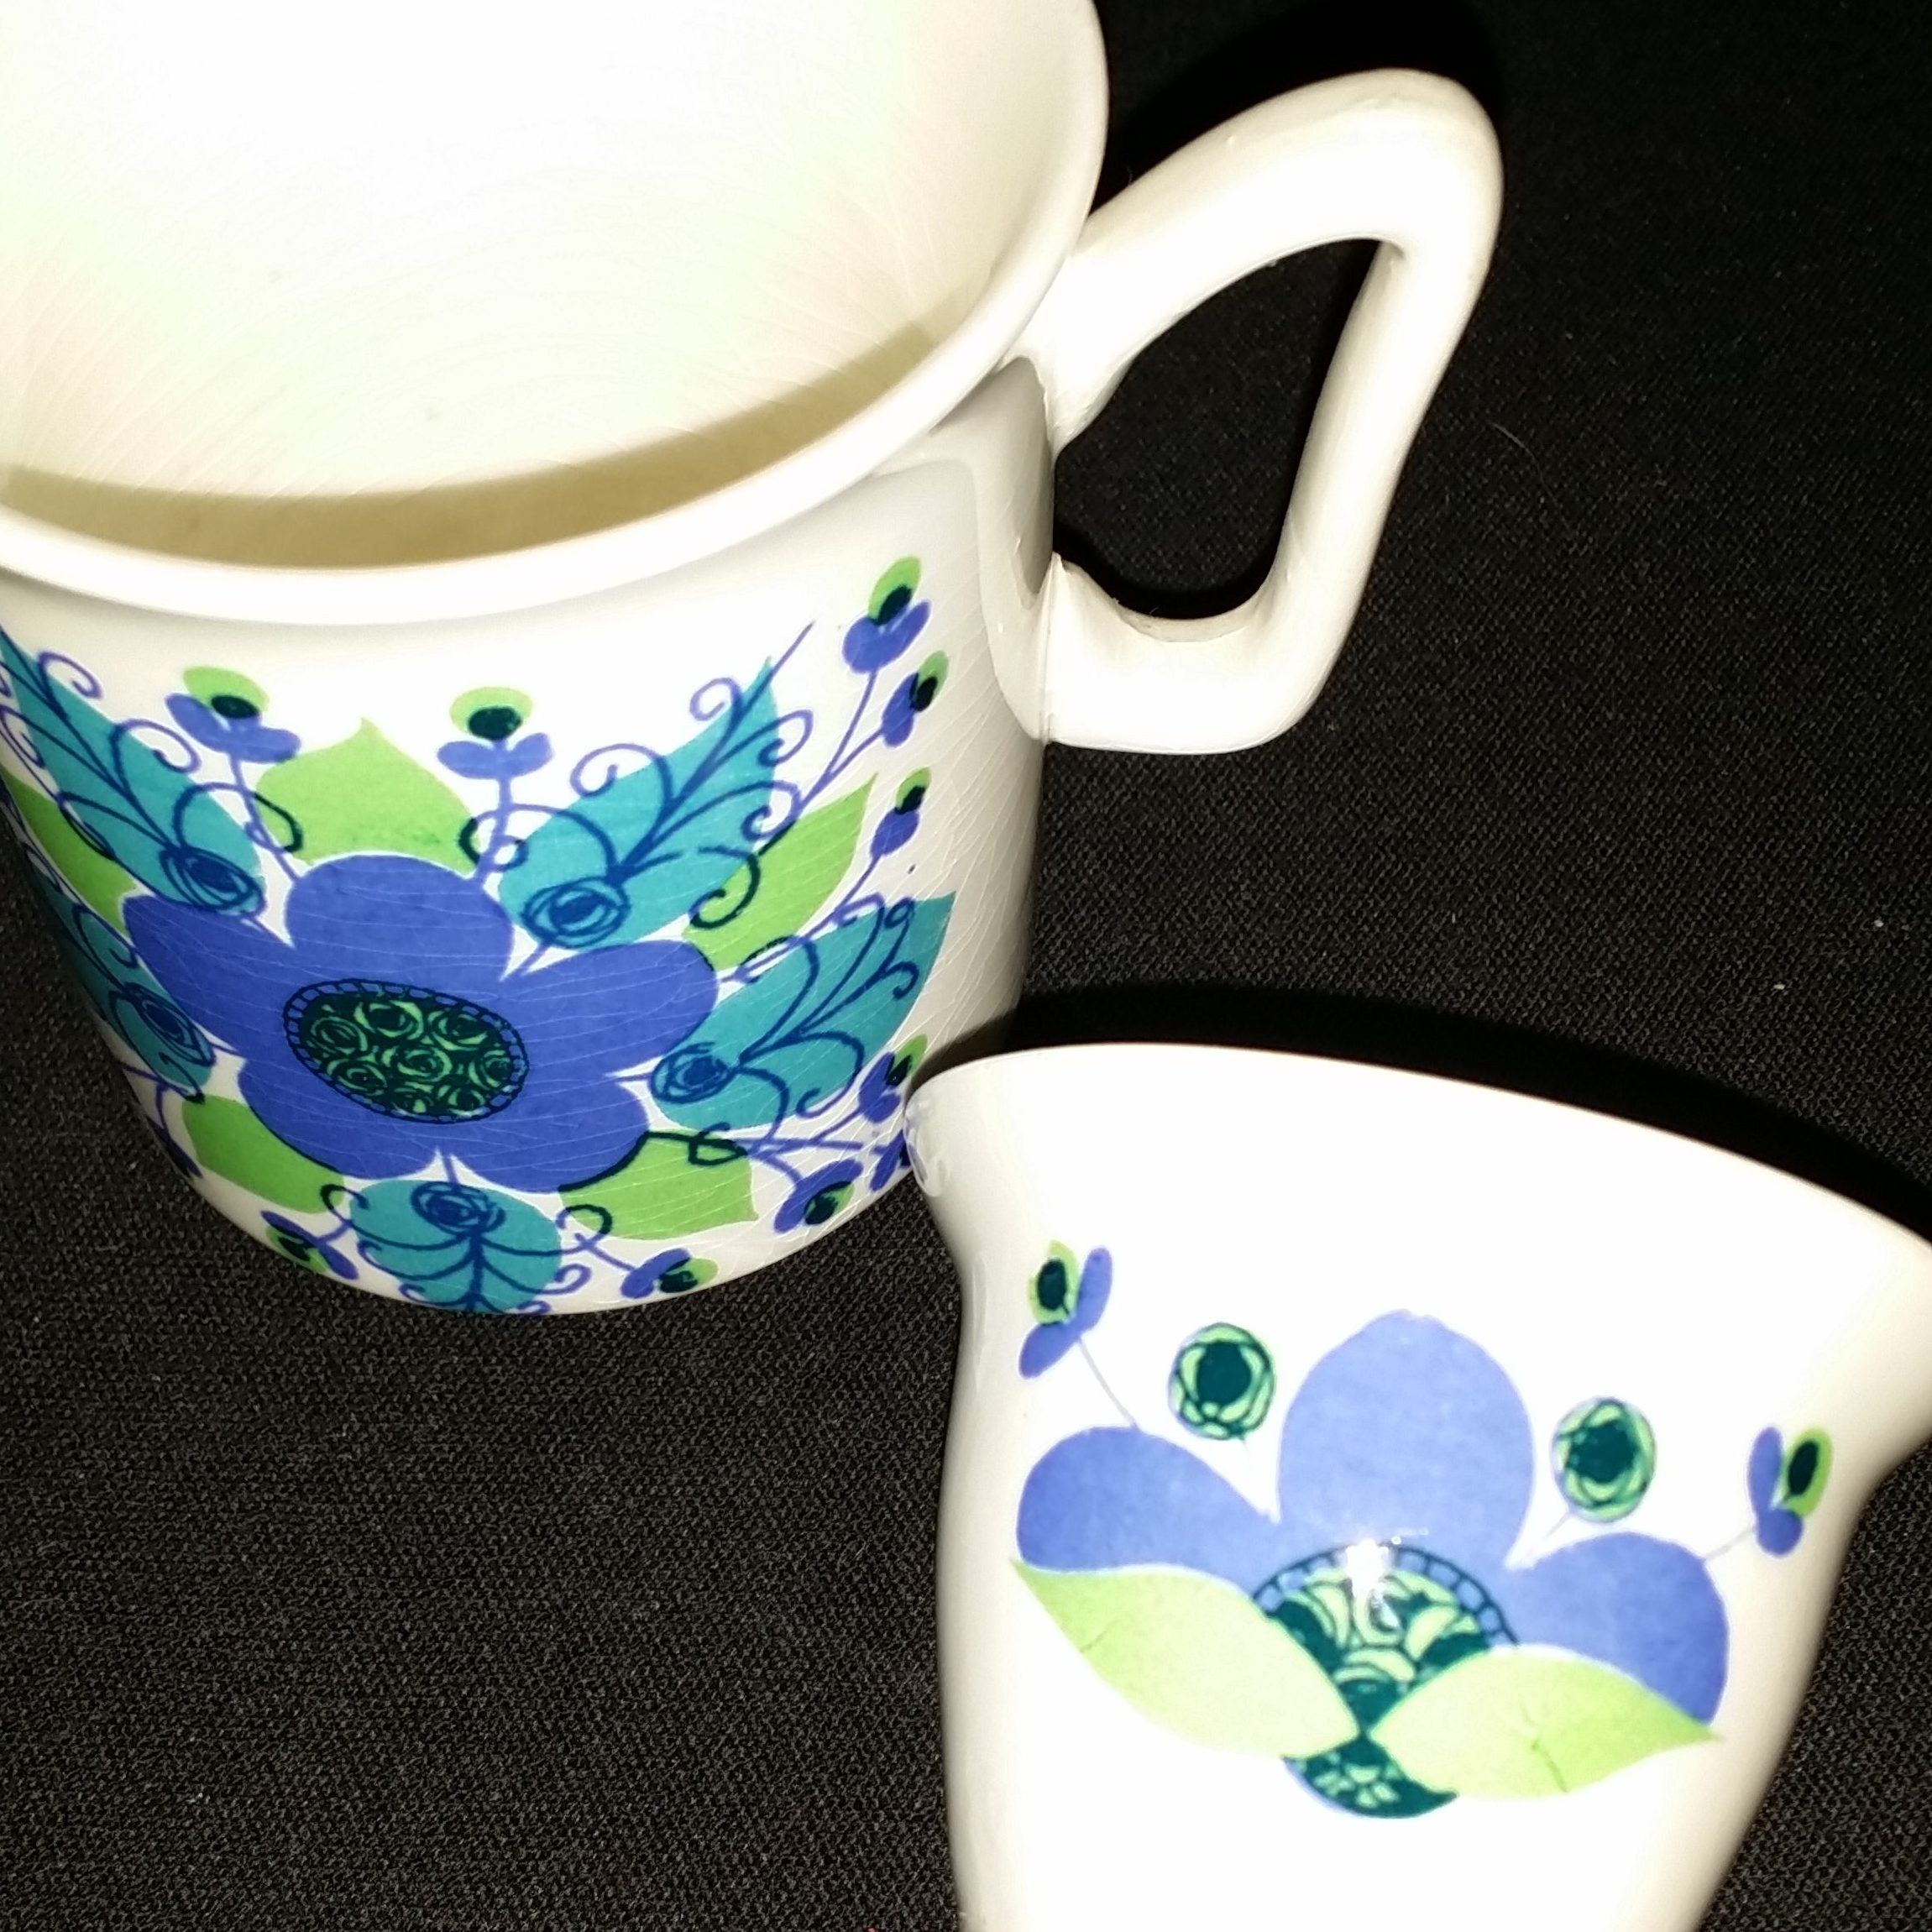 A cup and eggcup from my childhood